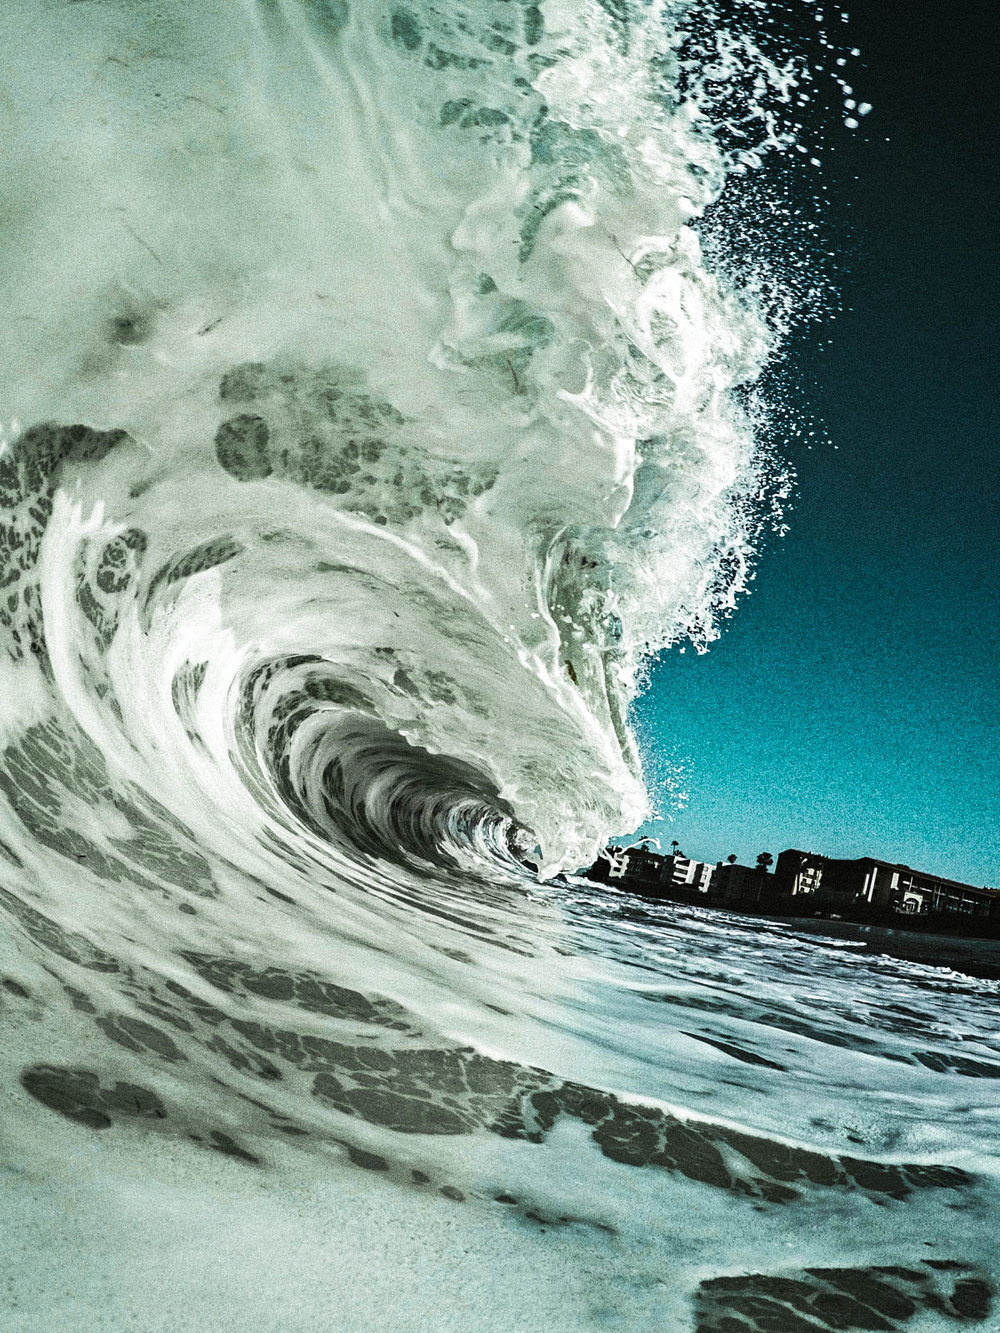 unsettle-co-lifestyle-blog-snapshots-interview-Matthew-Lawless-waves-barrels